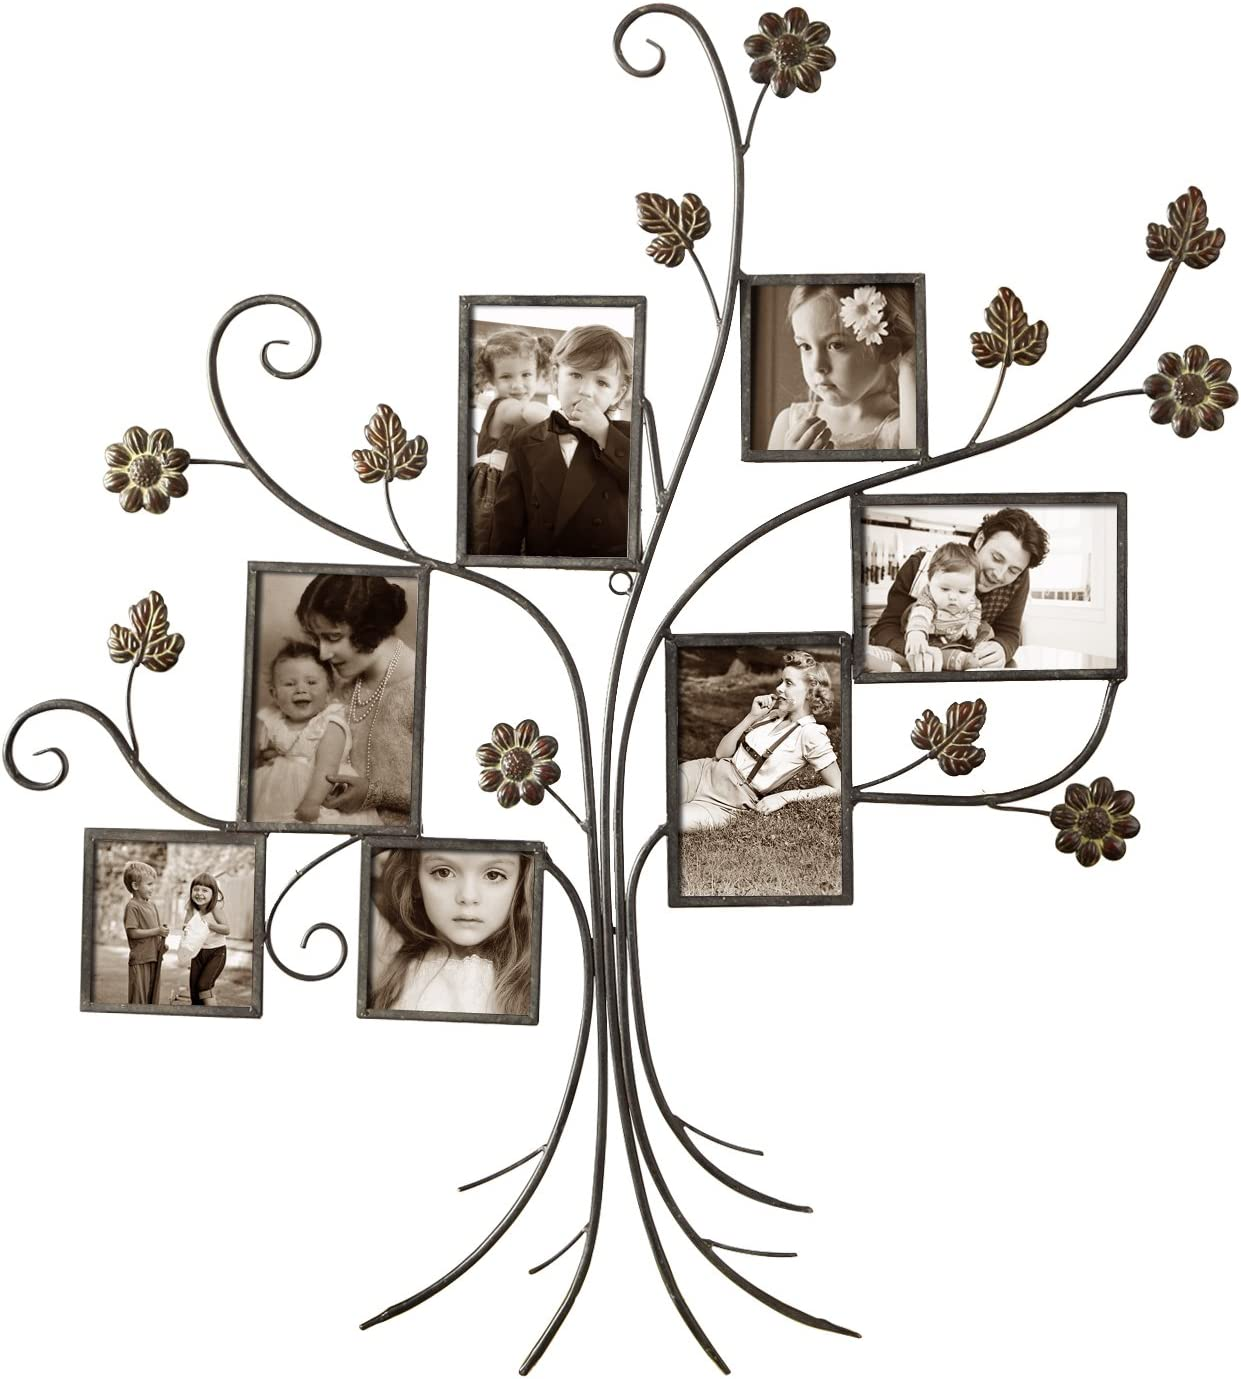 Asense 7-Opening Decorative Bronze Iron Tree Wall Hanging Collage Photo Picture Poster Frame, 4 by 4 and 4 by 6 Inch